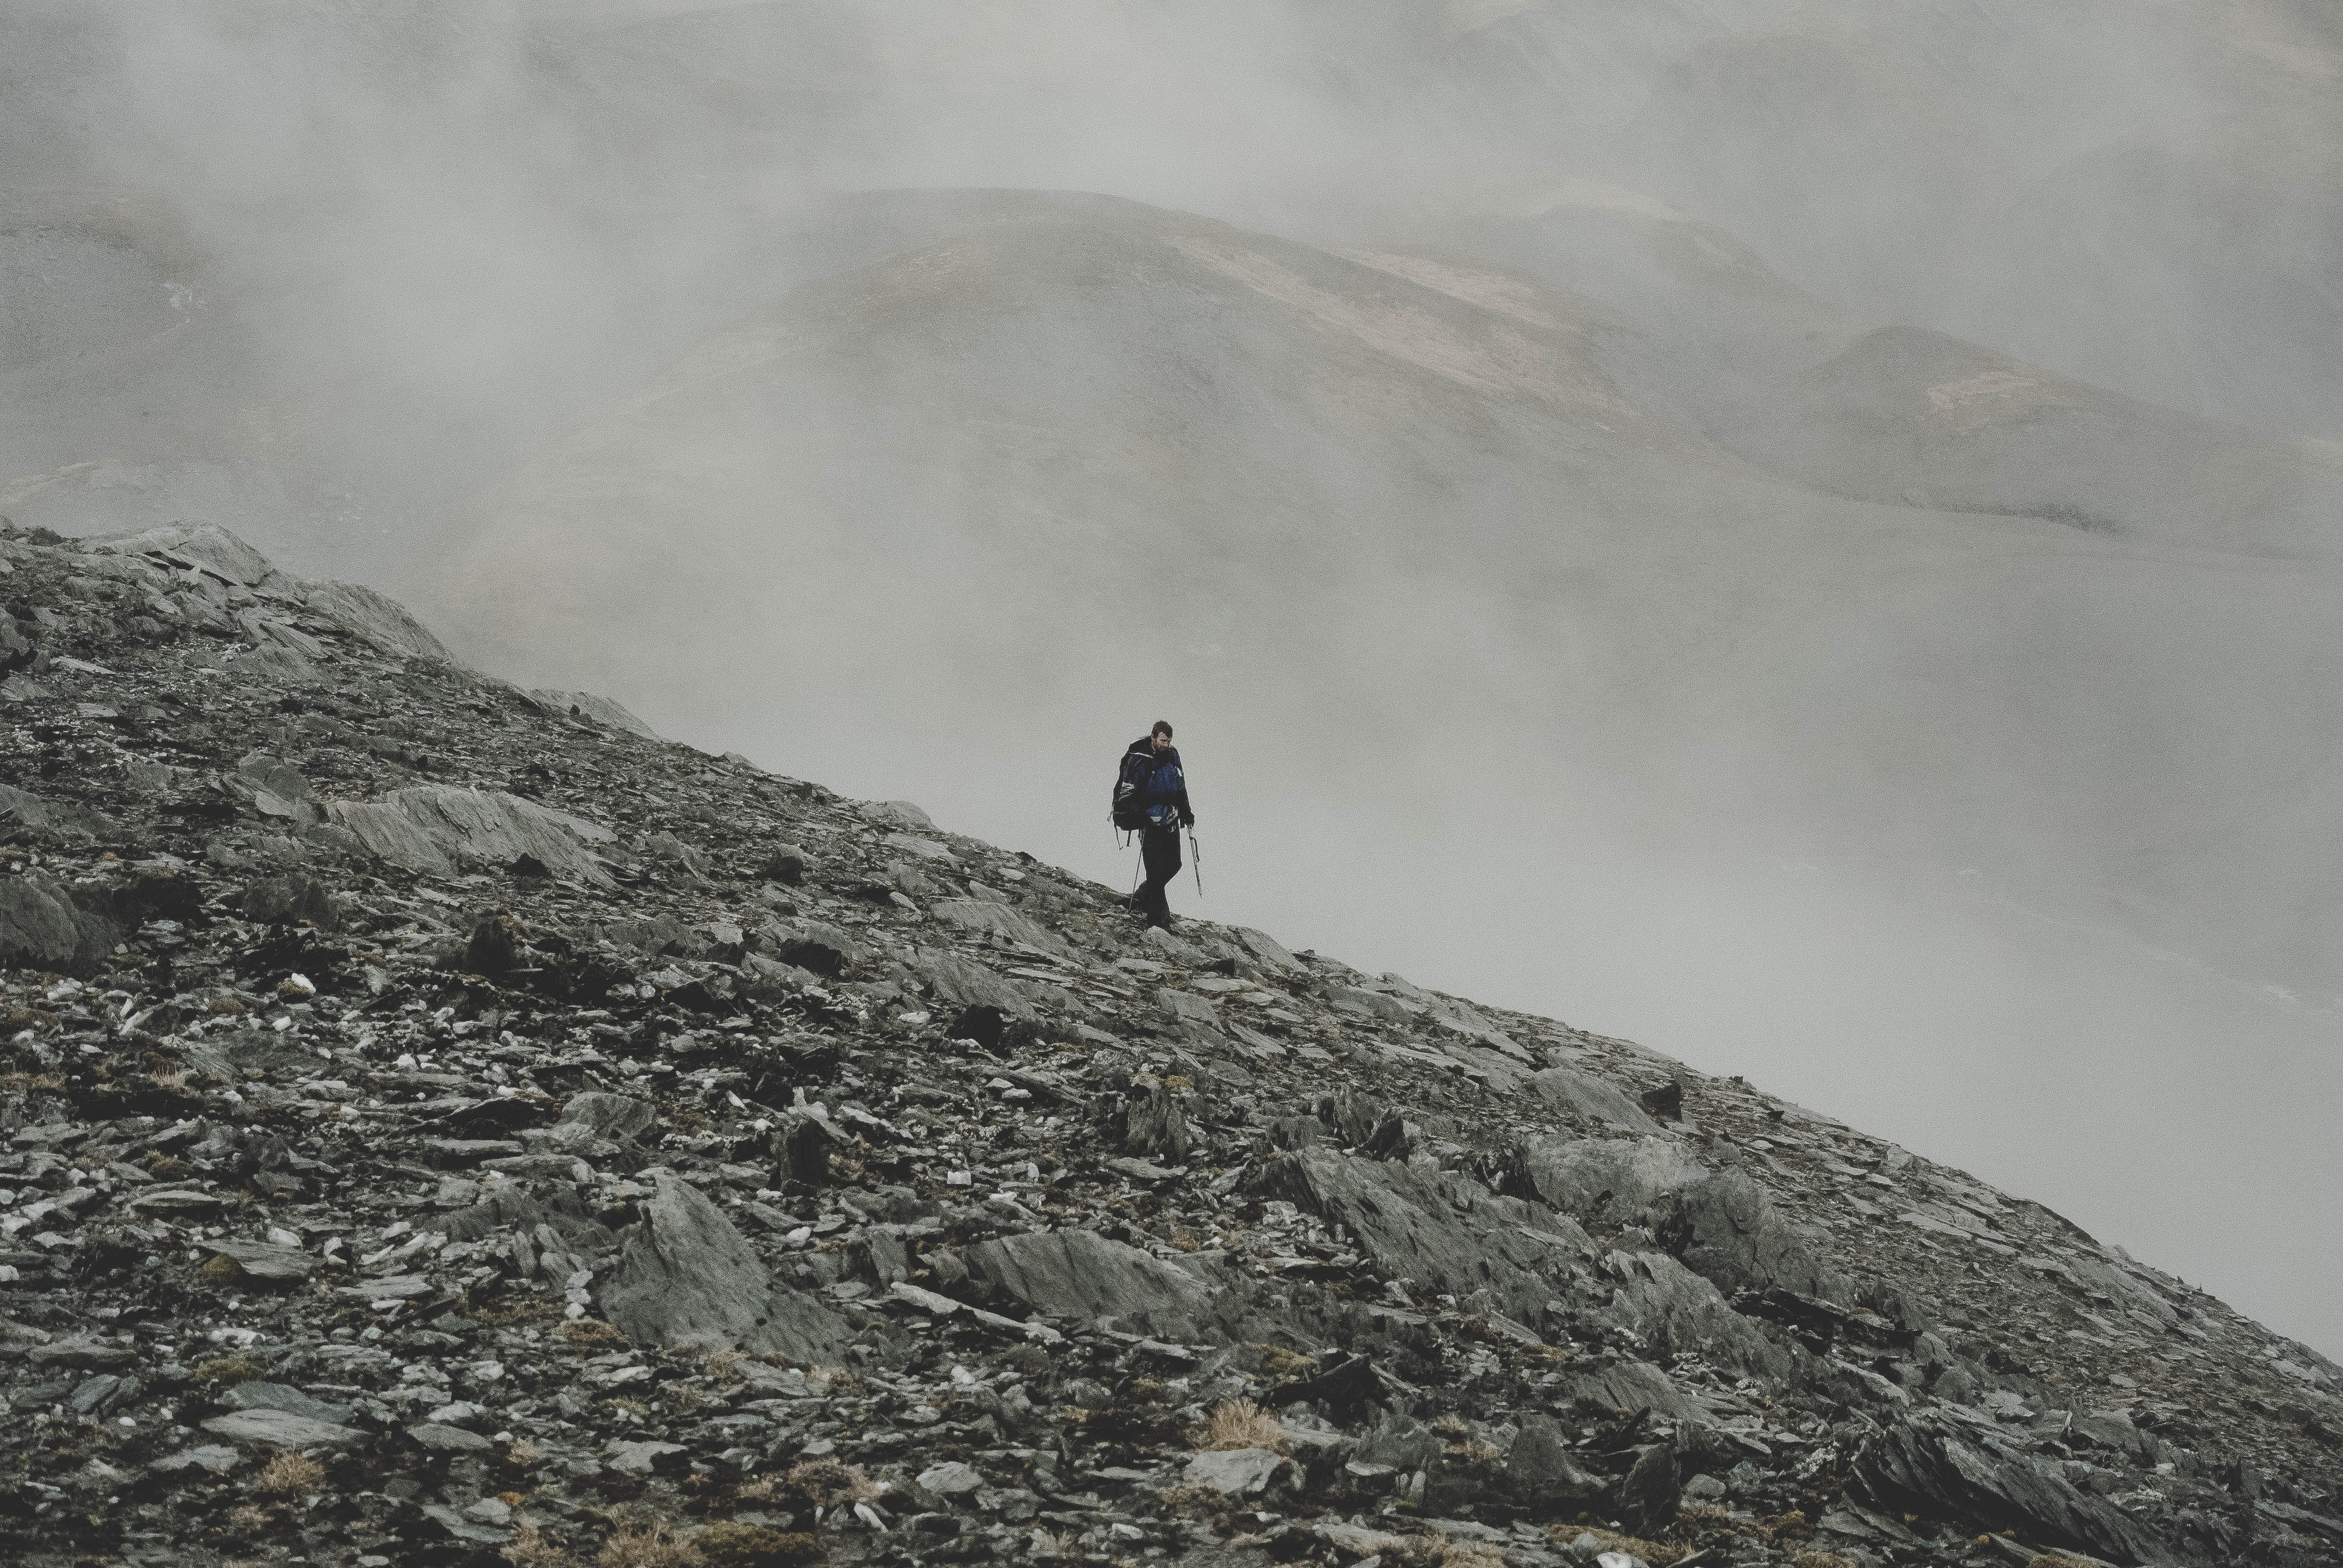 Hiker walks alone down a rocky slope in the fog